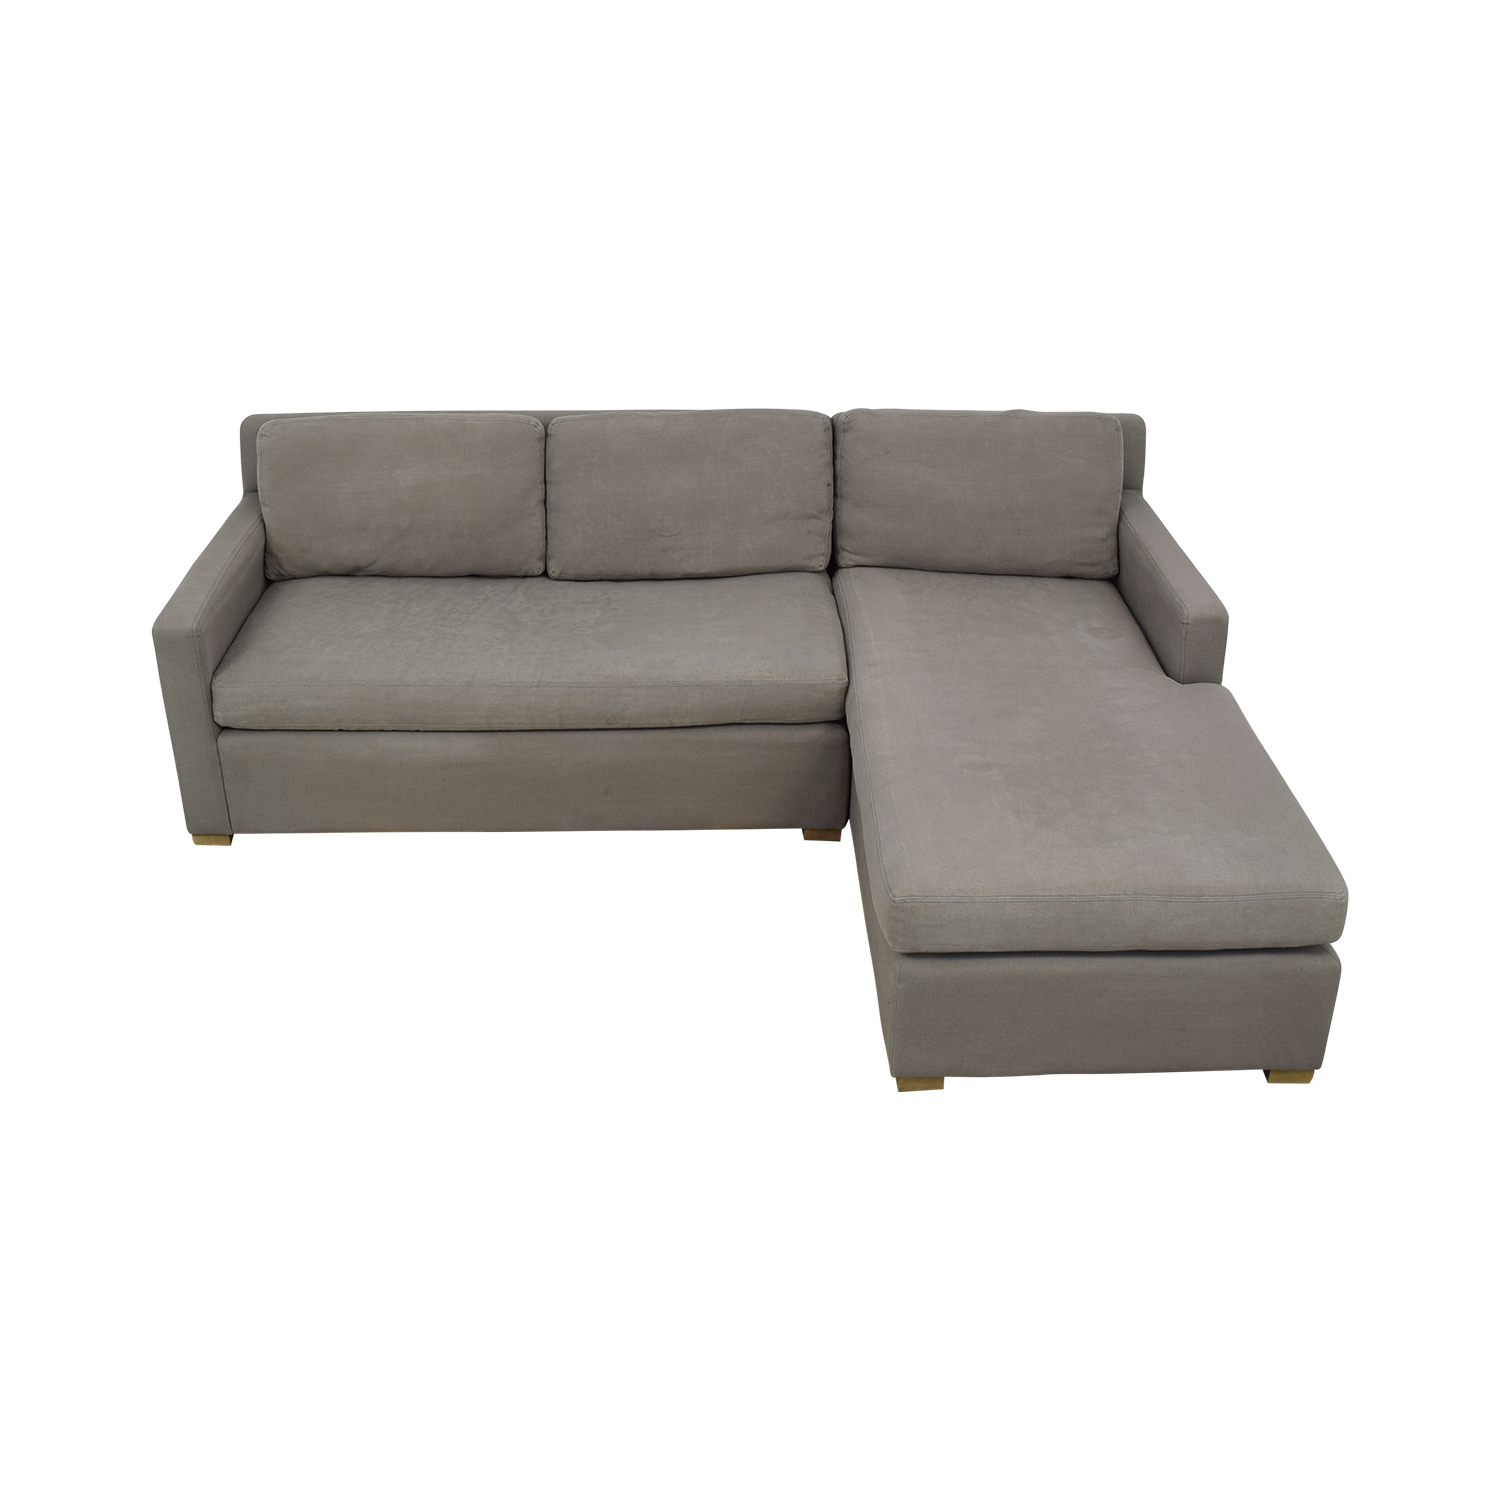 best sneakers ed1b1 a811e 79% OFF - Restoration Hardware Restoration Hardware Belgian Track Arm  Right-Arm Chaise Sectional / Sofas